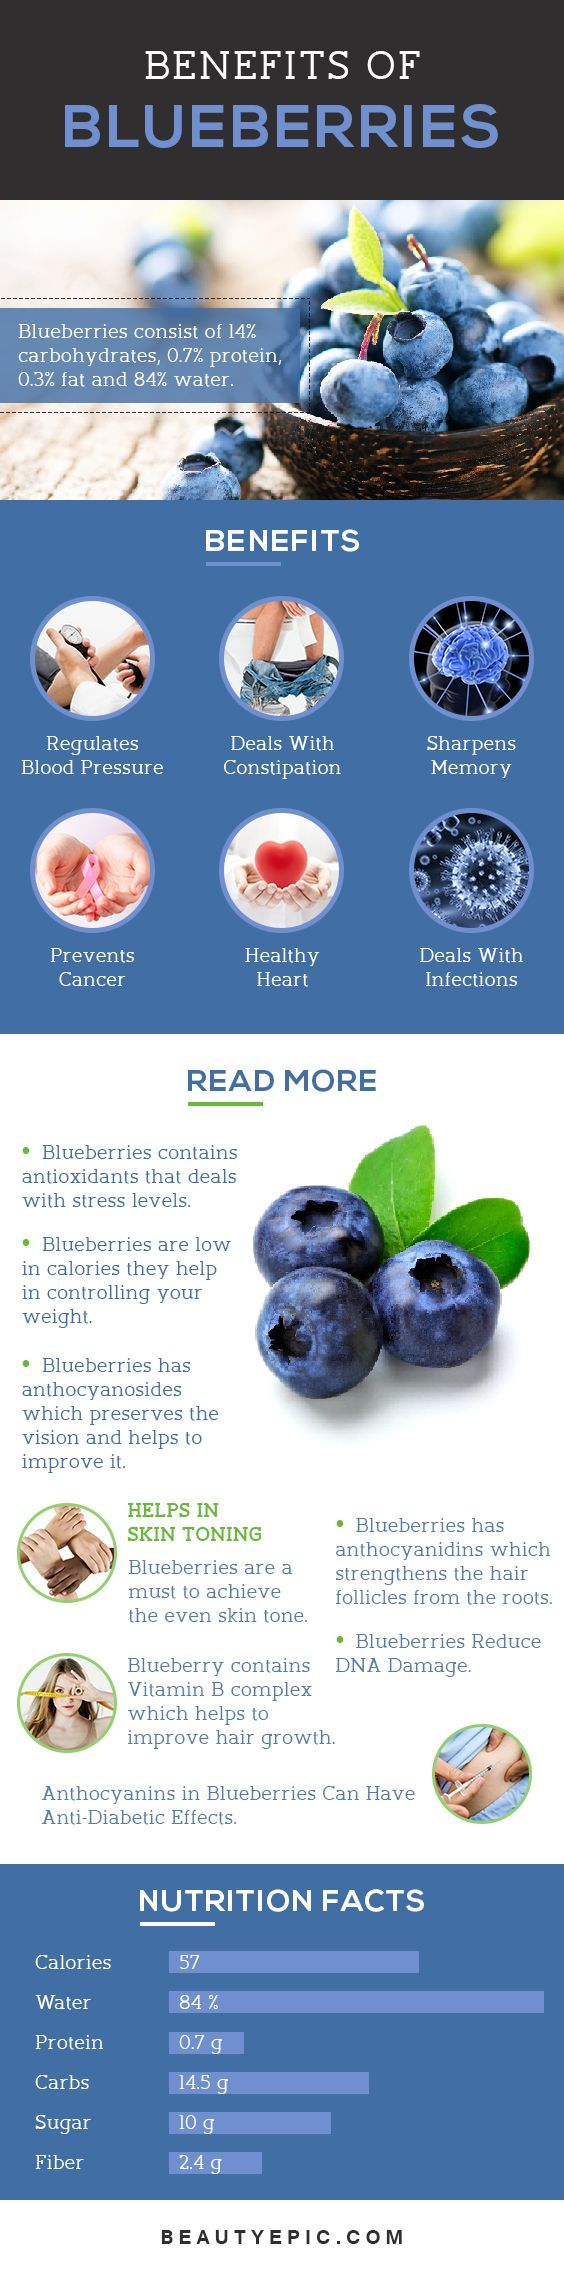 Amazing Benefits Of Blueberries For Skin, Hair, And Health